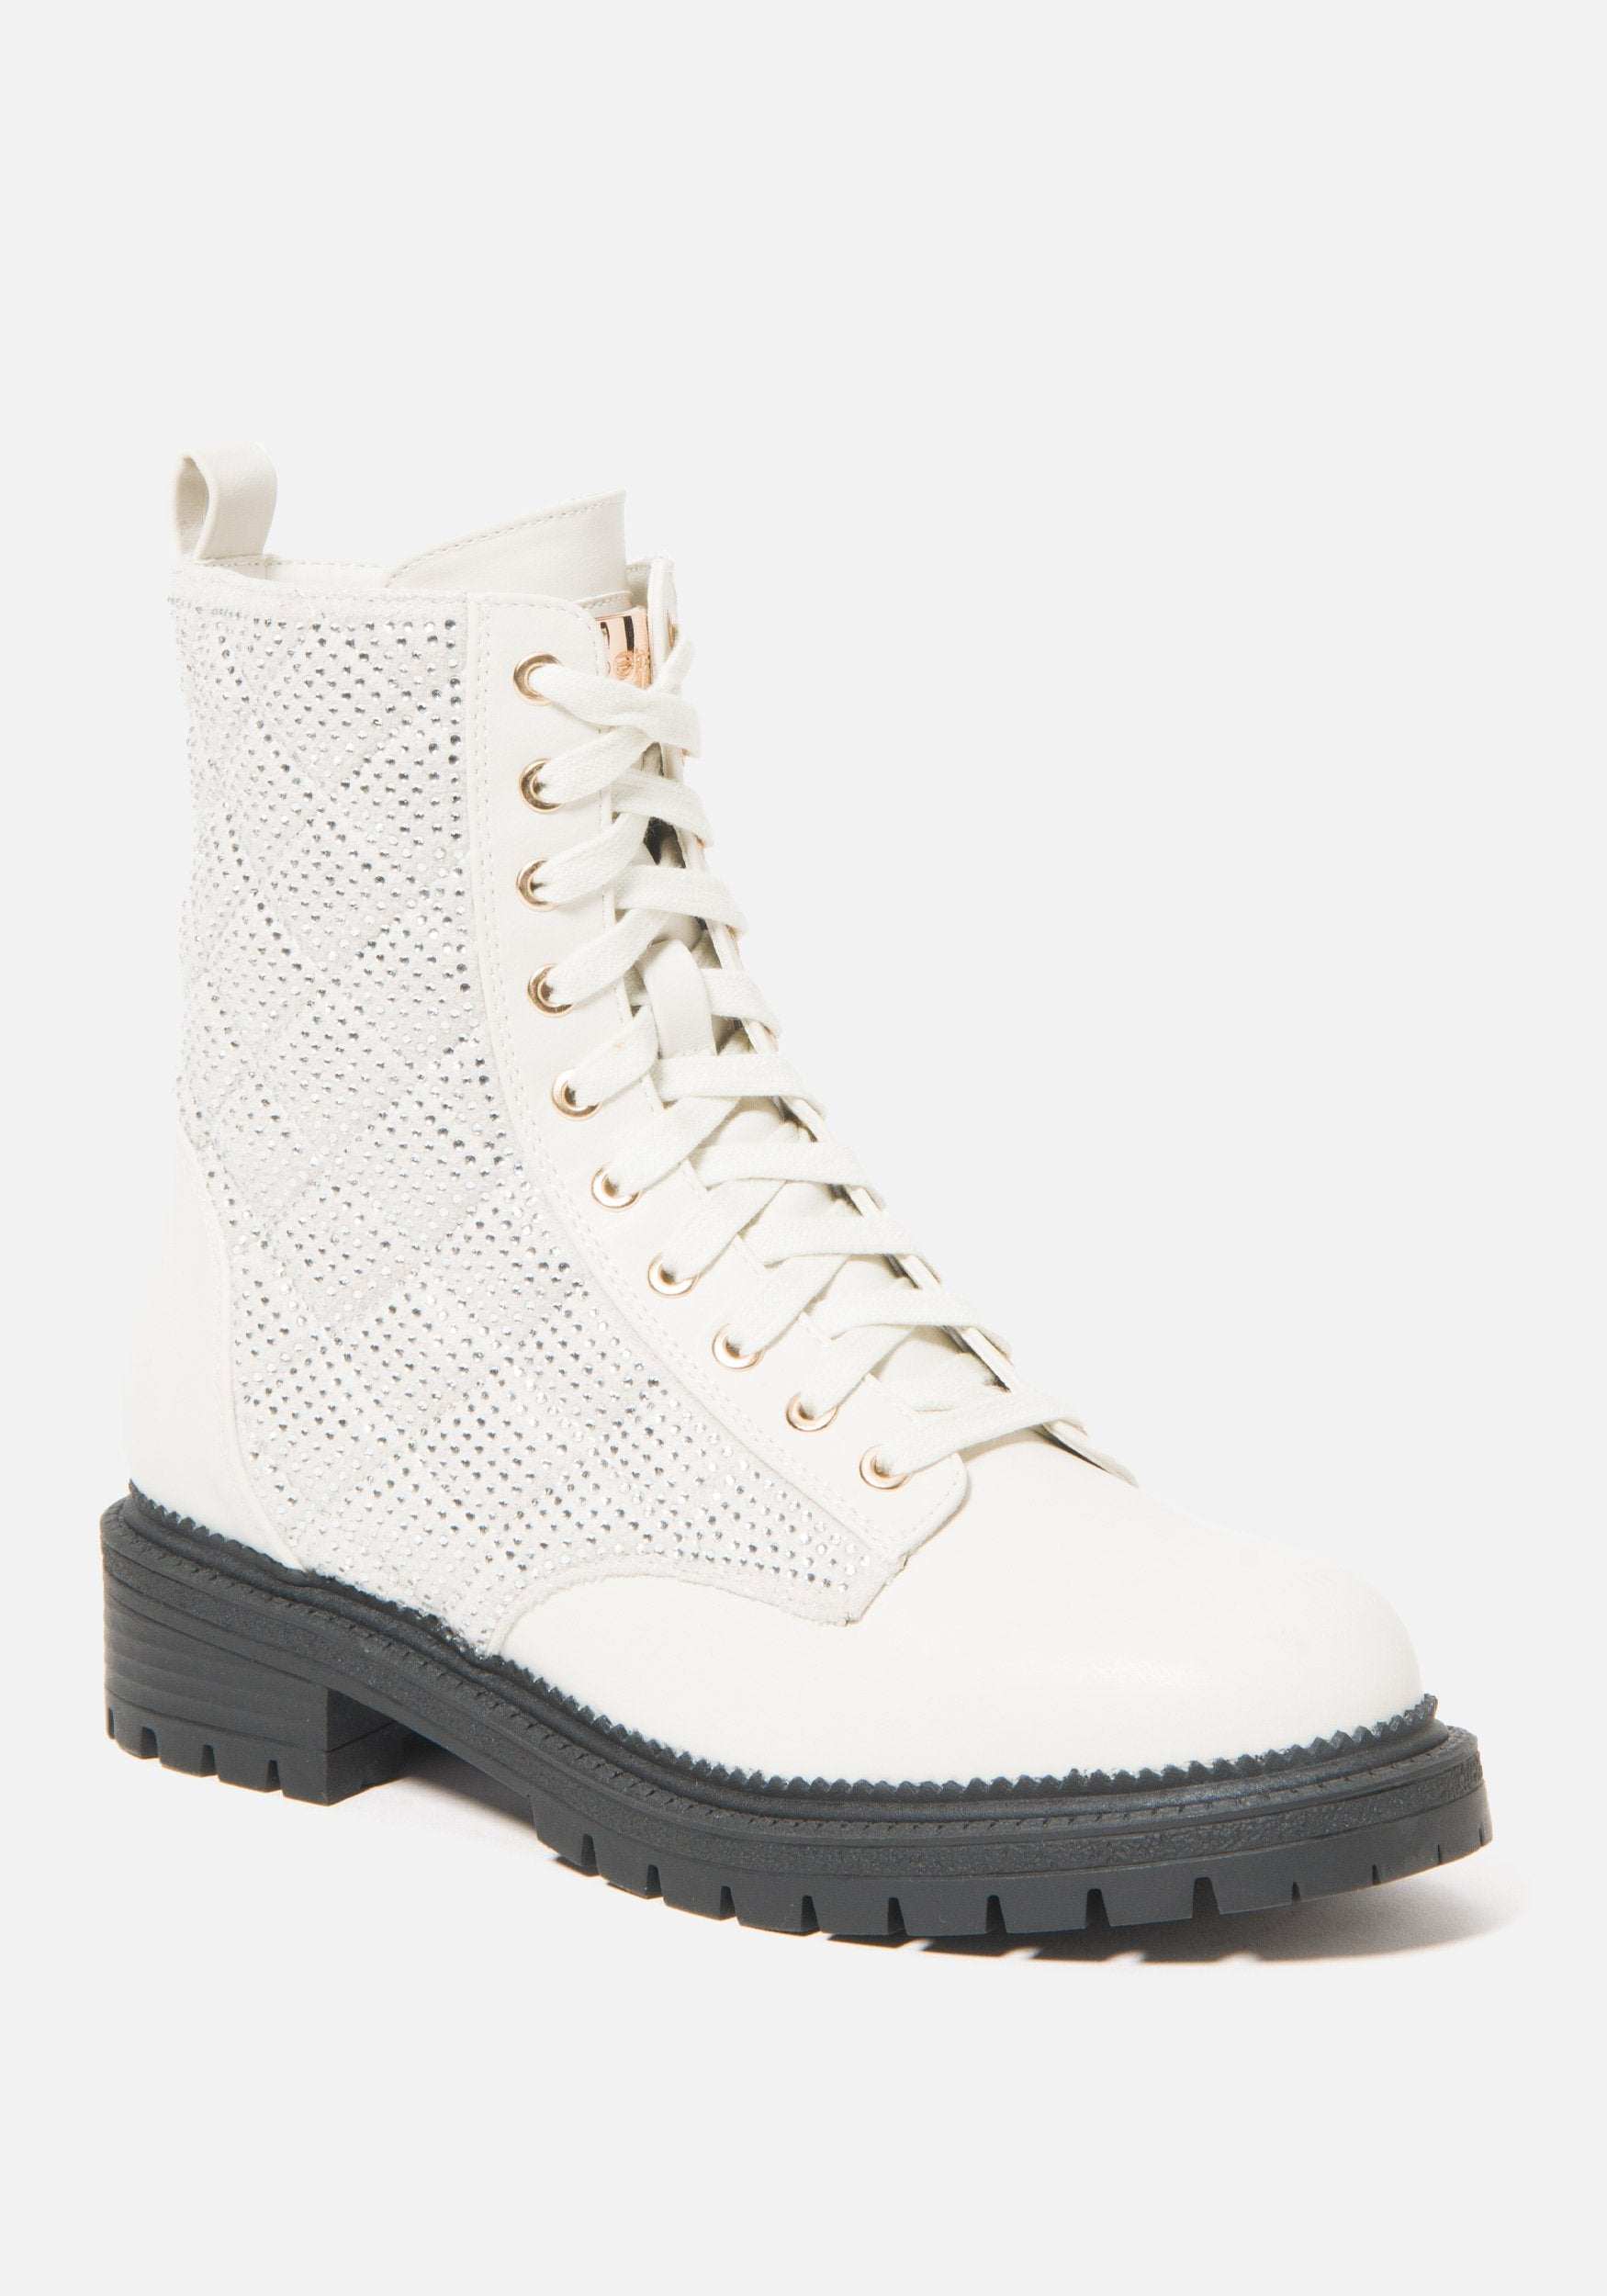 Bebe Women's Dorienne Lace Combat Boots, Size 6 in Off White Synthetic